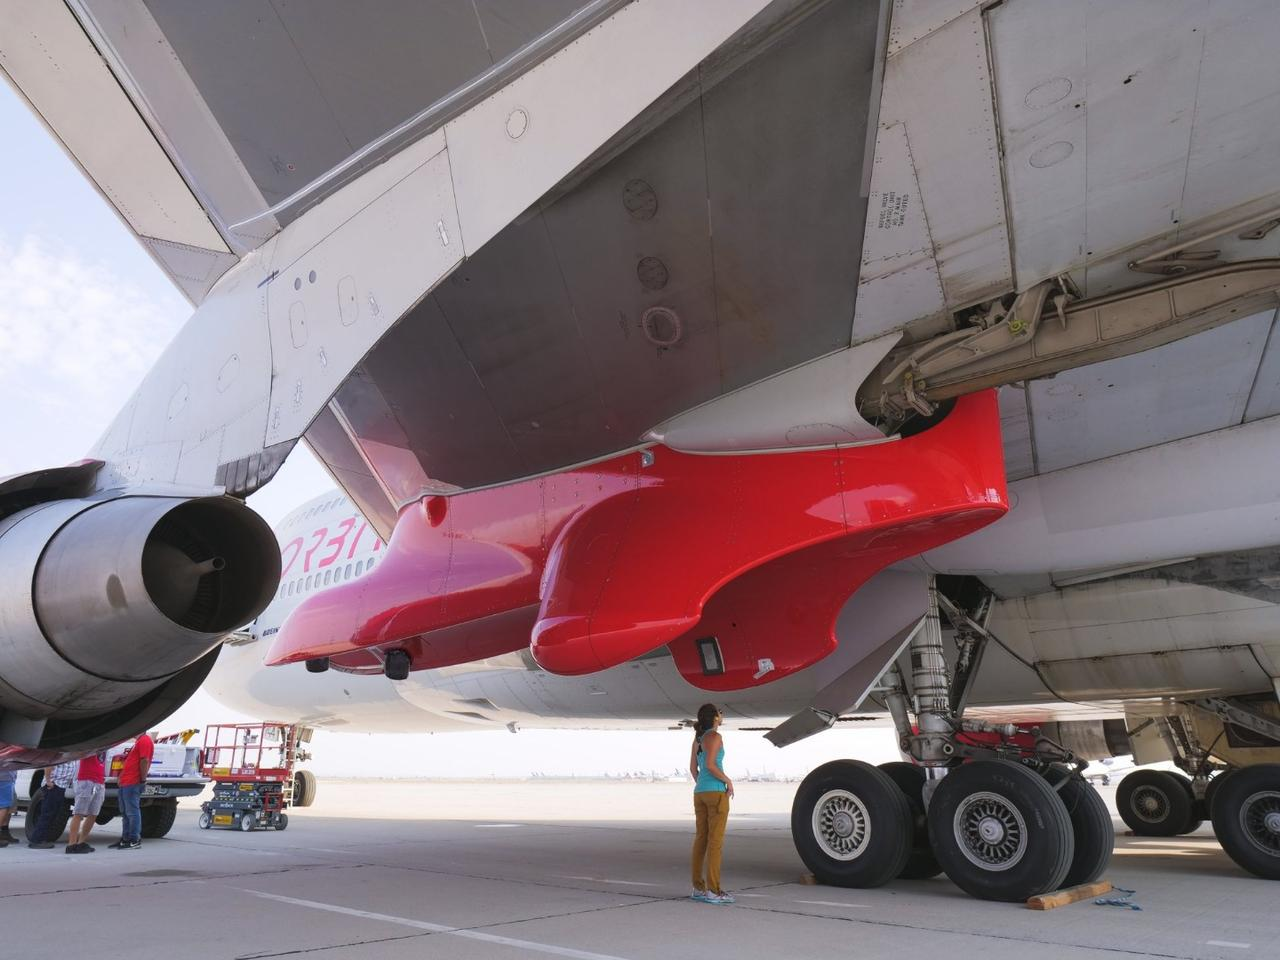 The pylon that will carry rockets aboard Virgin Orbit's Cosmic Girl mothership, seen in red